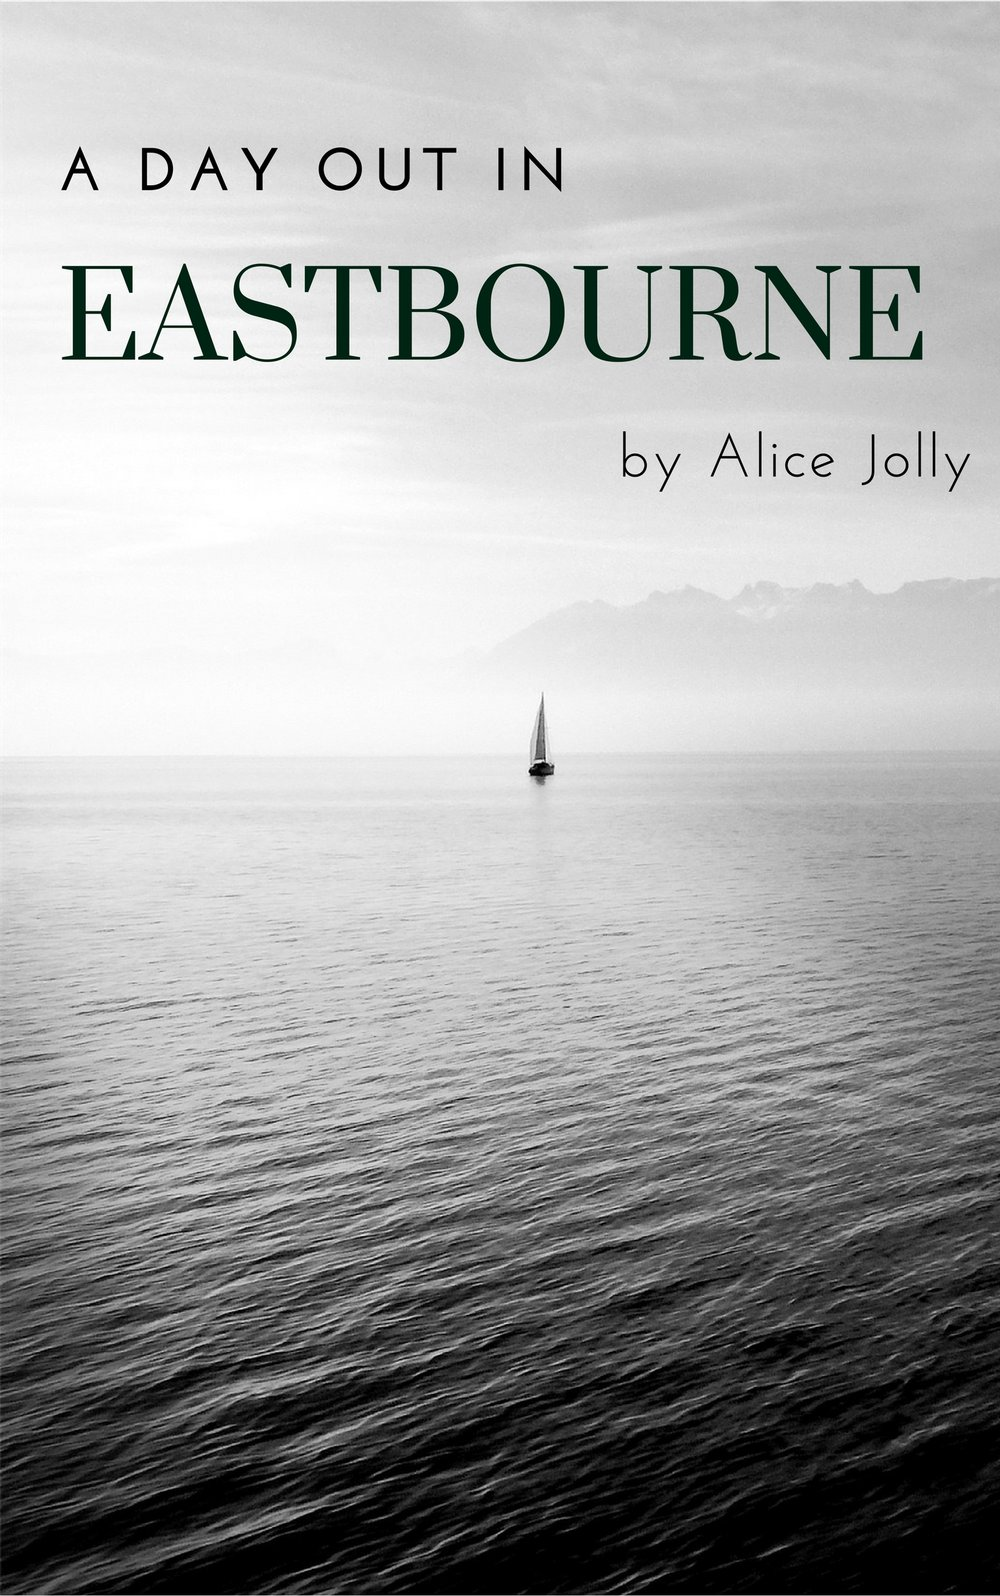 A Day Out in Eastbourne by Alice Jolly